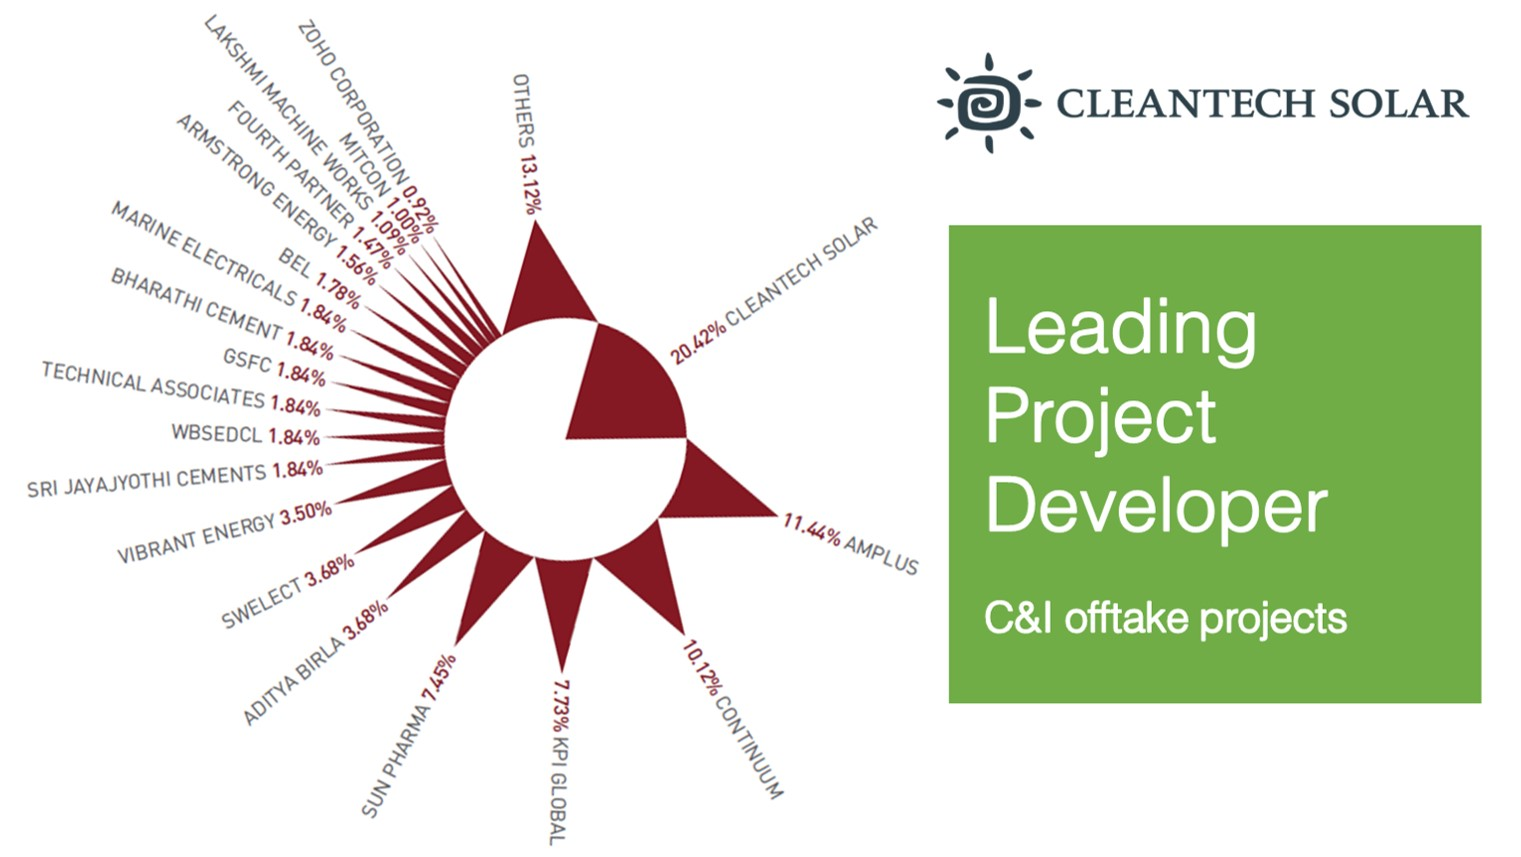 Open Access Offtake Projects Leader